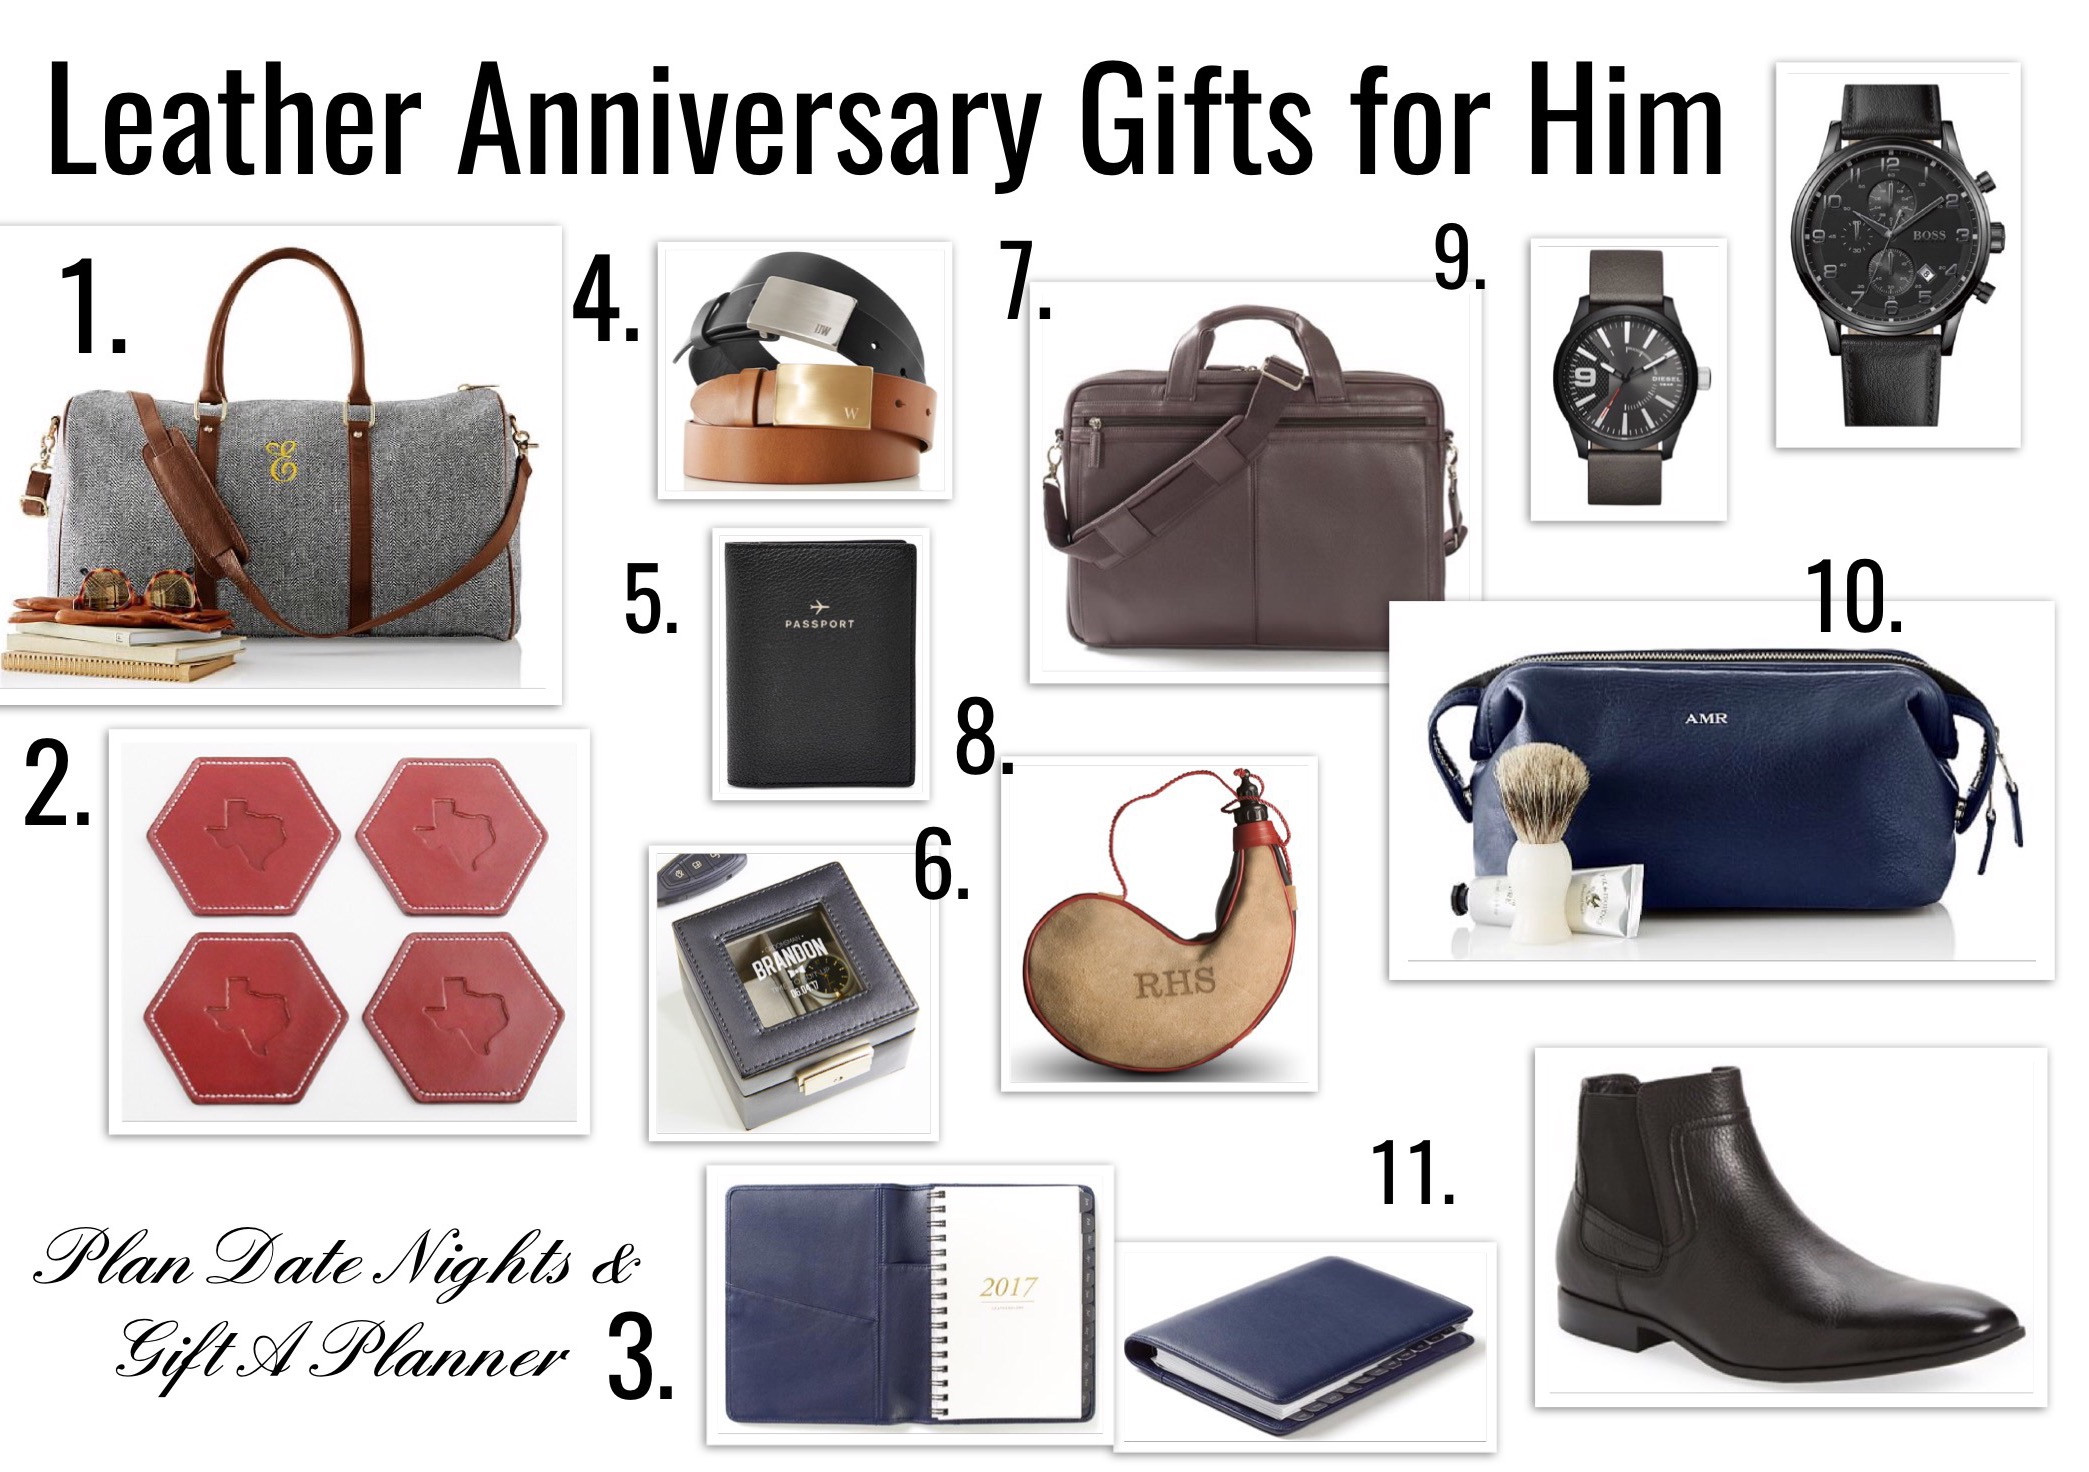 Best ideas about 3 Year Anniversary Gift Ideas For Him . Save or Pin 3 Year Anniversary Leather Gift Ideas For Him Now.